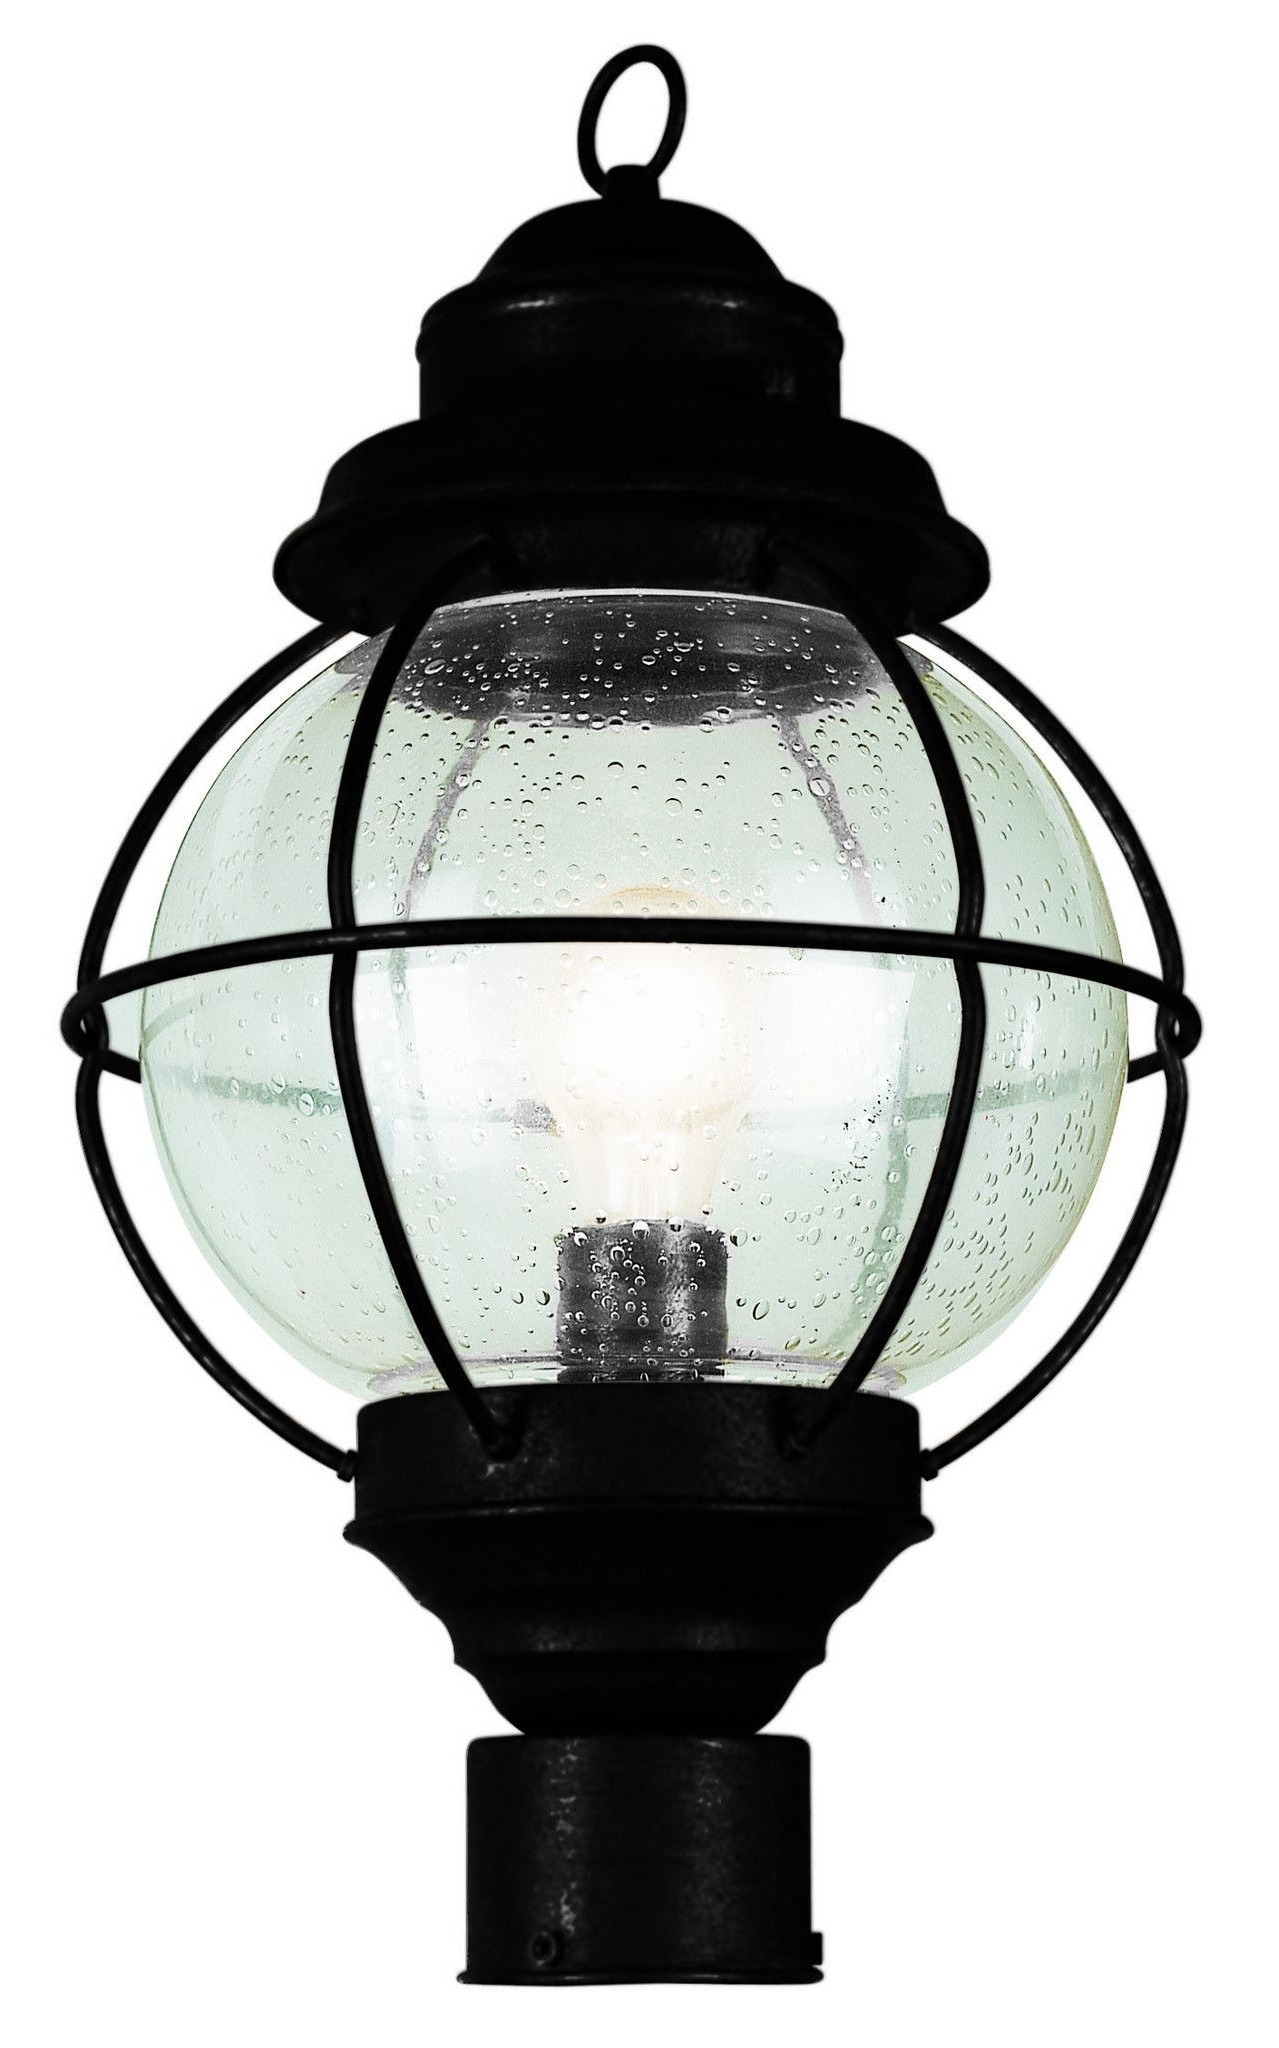 "Widely Used Trans Globe Lighting 69902 Bk Onion Lantern Post Top 15"" Black Regarding Outdoor Lighting Onion Lanterns (View 8 of 20)"